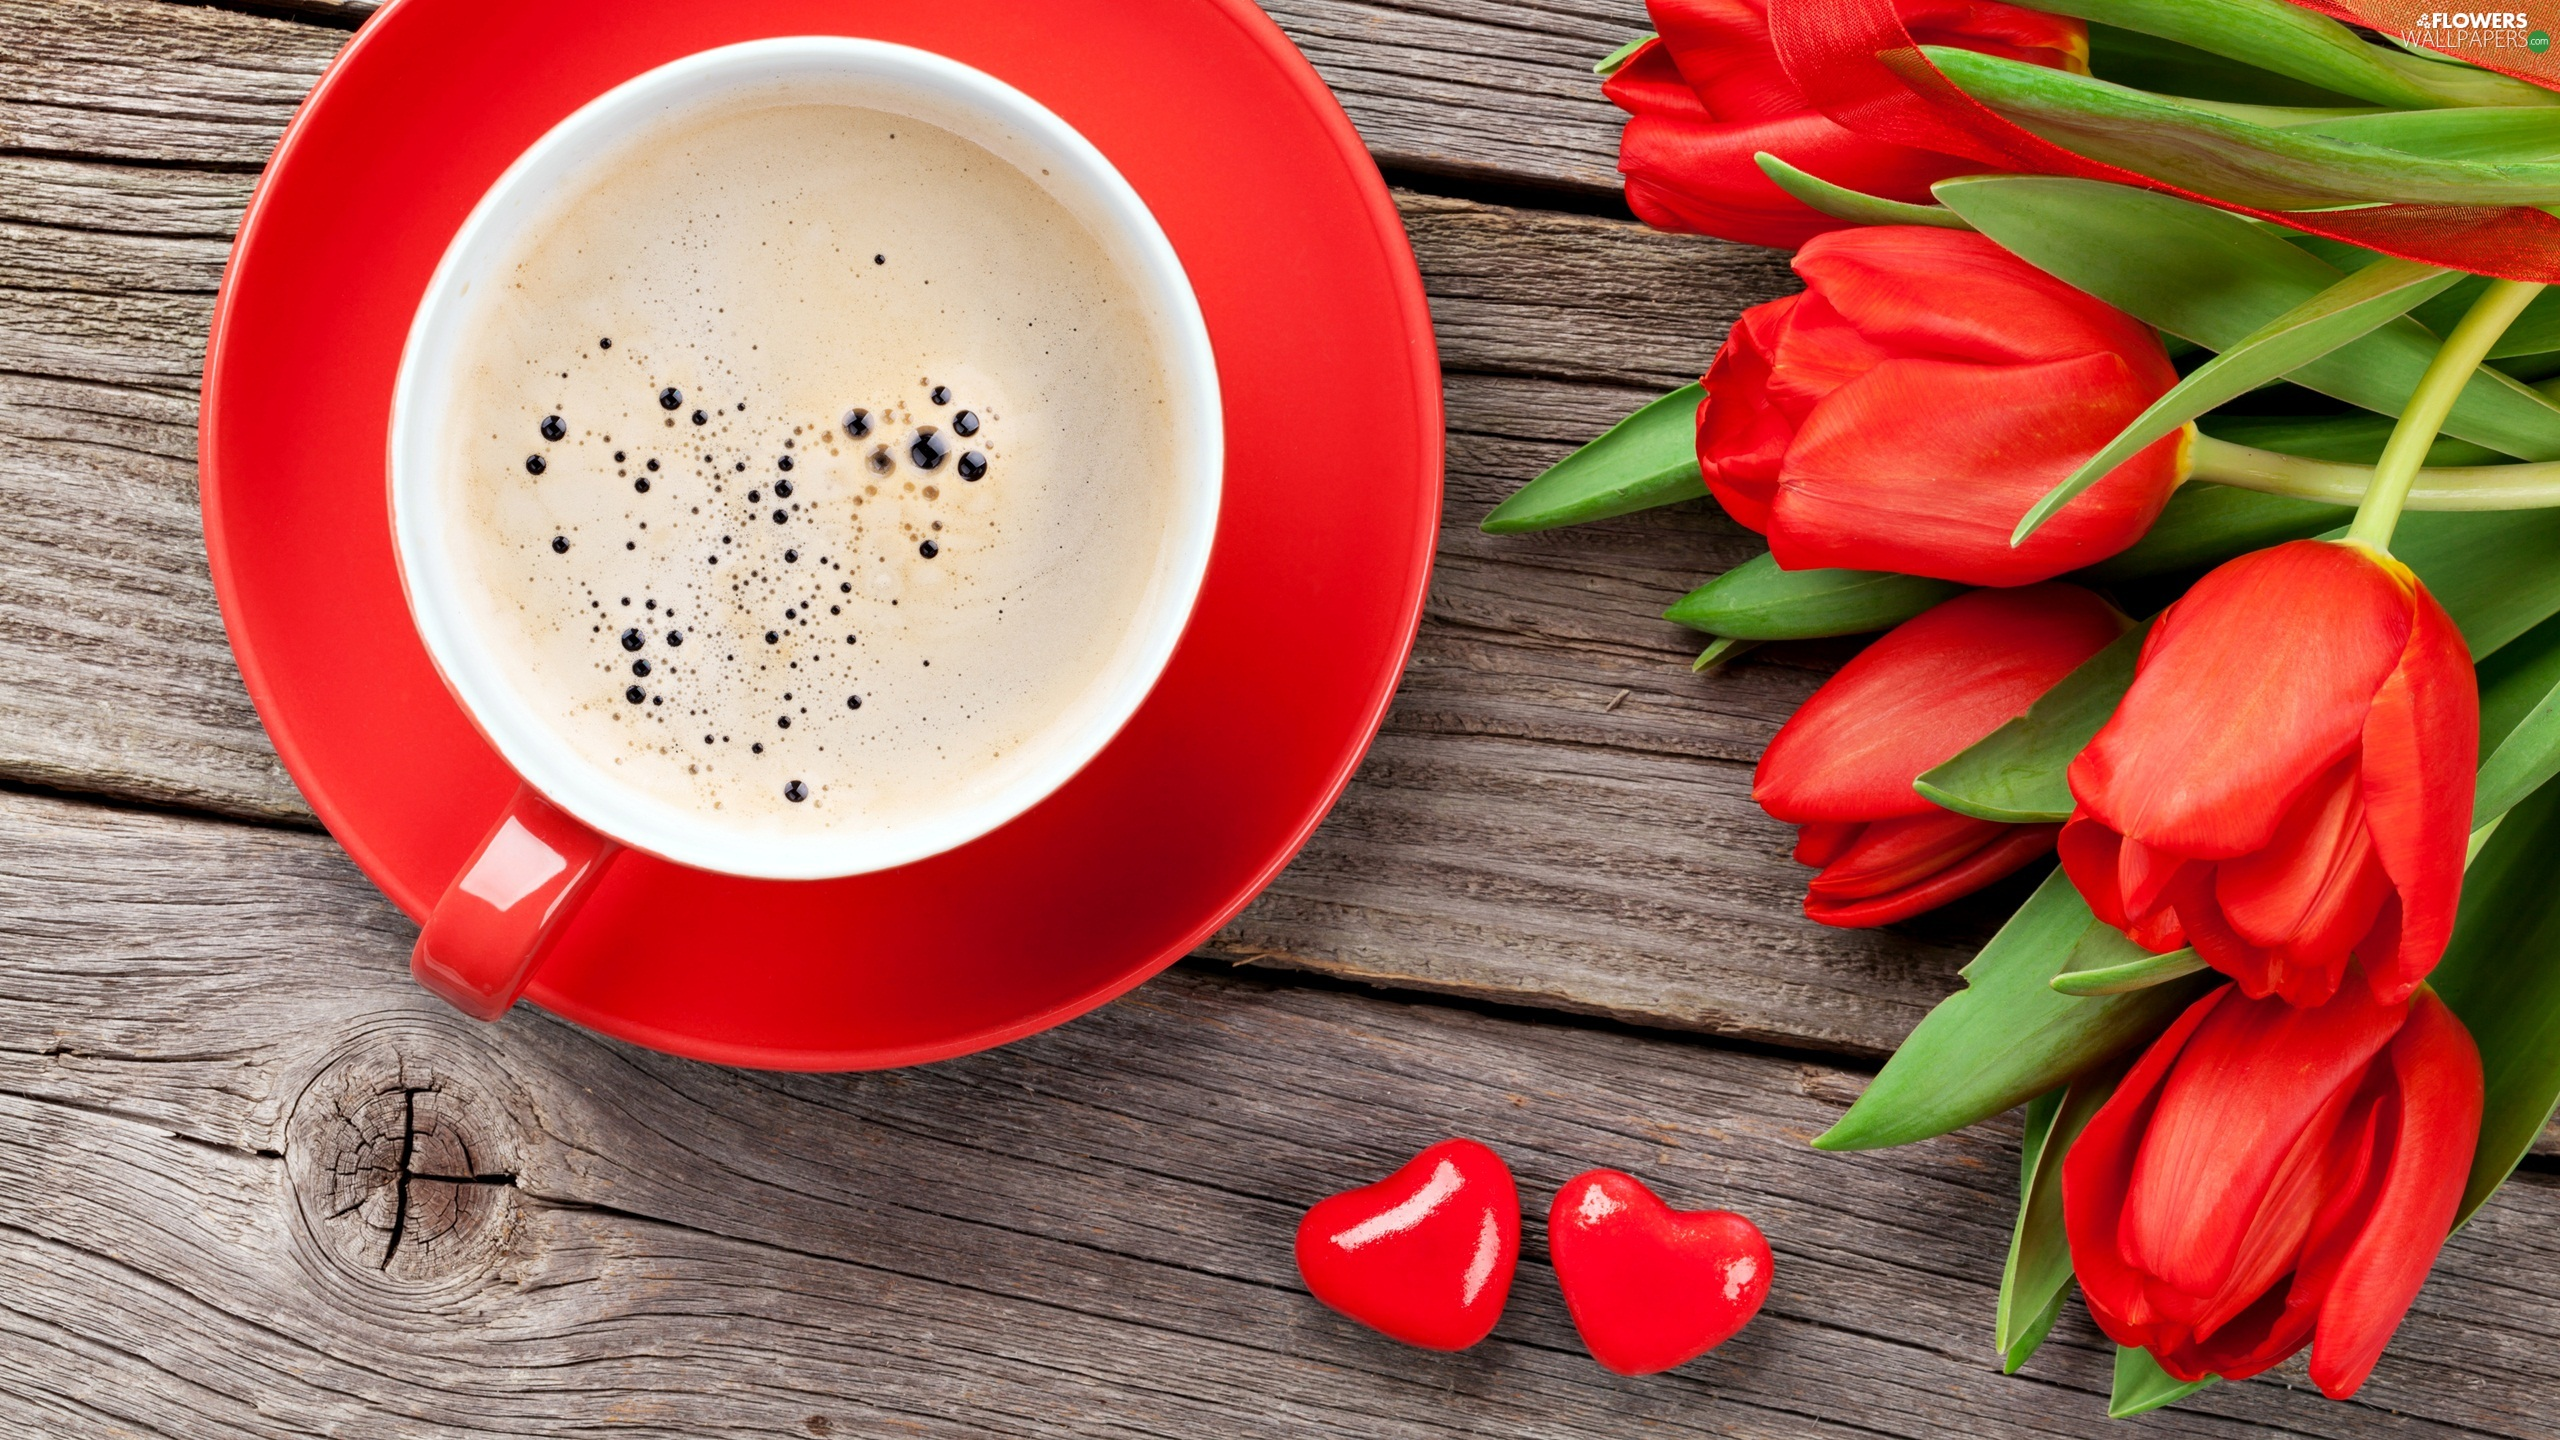 Tulips, coffee, plate, hearts, cup, Red